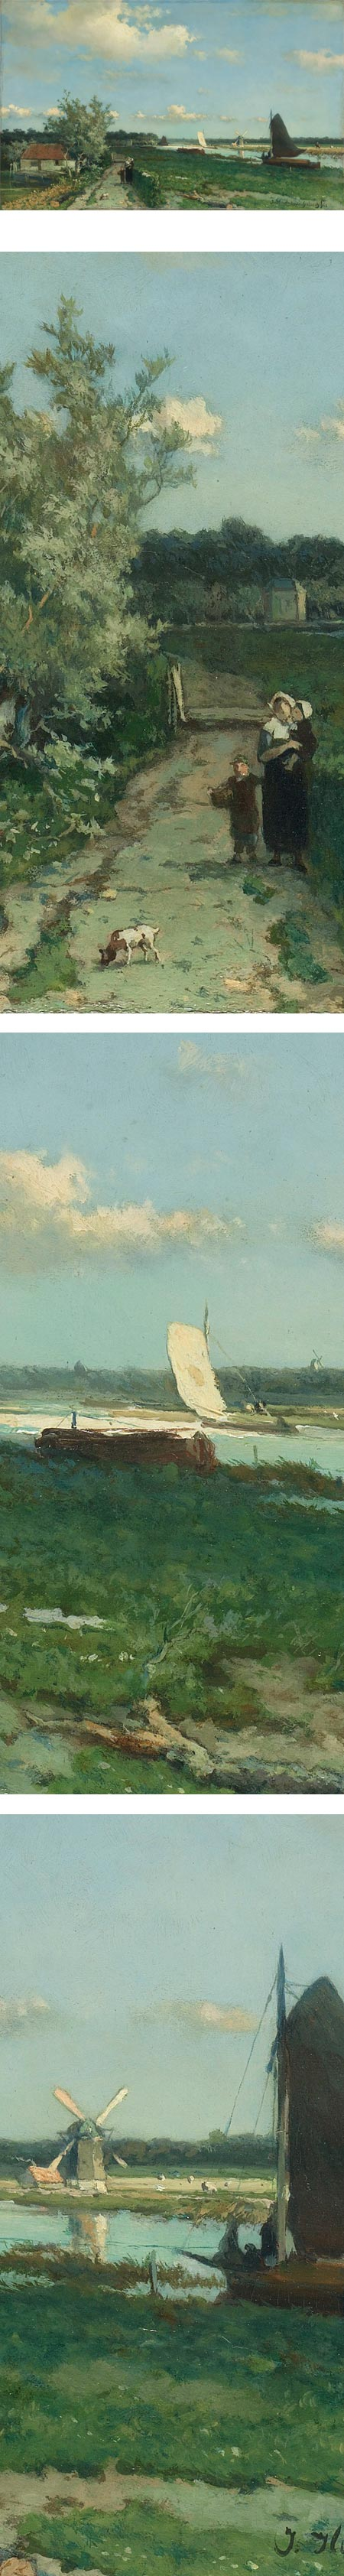 The Trekvliet Shipping Canal near Rijswijk, also known as the View near the Geest Bridge, Johan Hendrik Weissenbruch